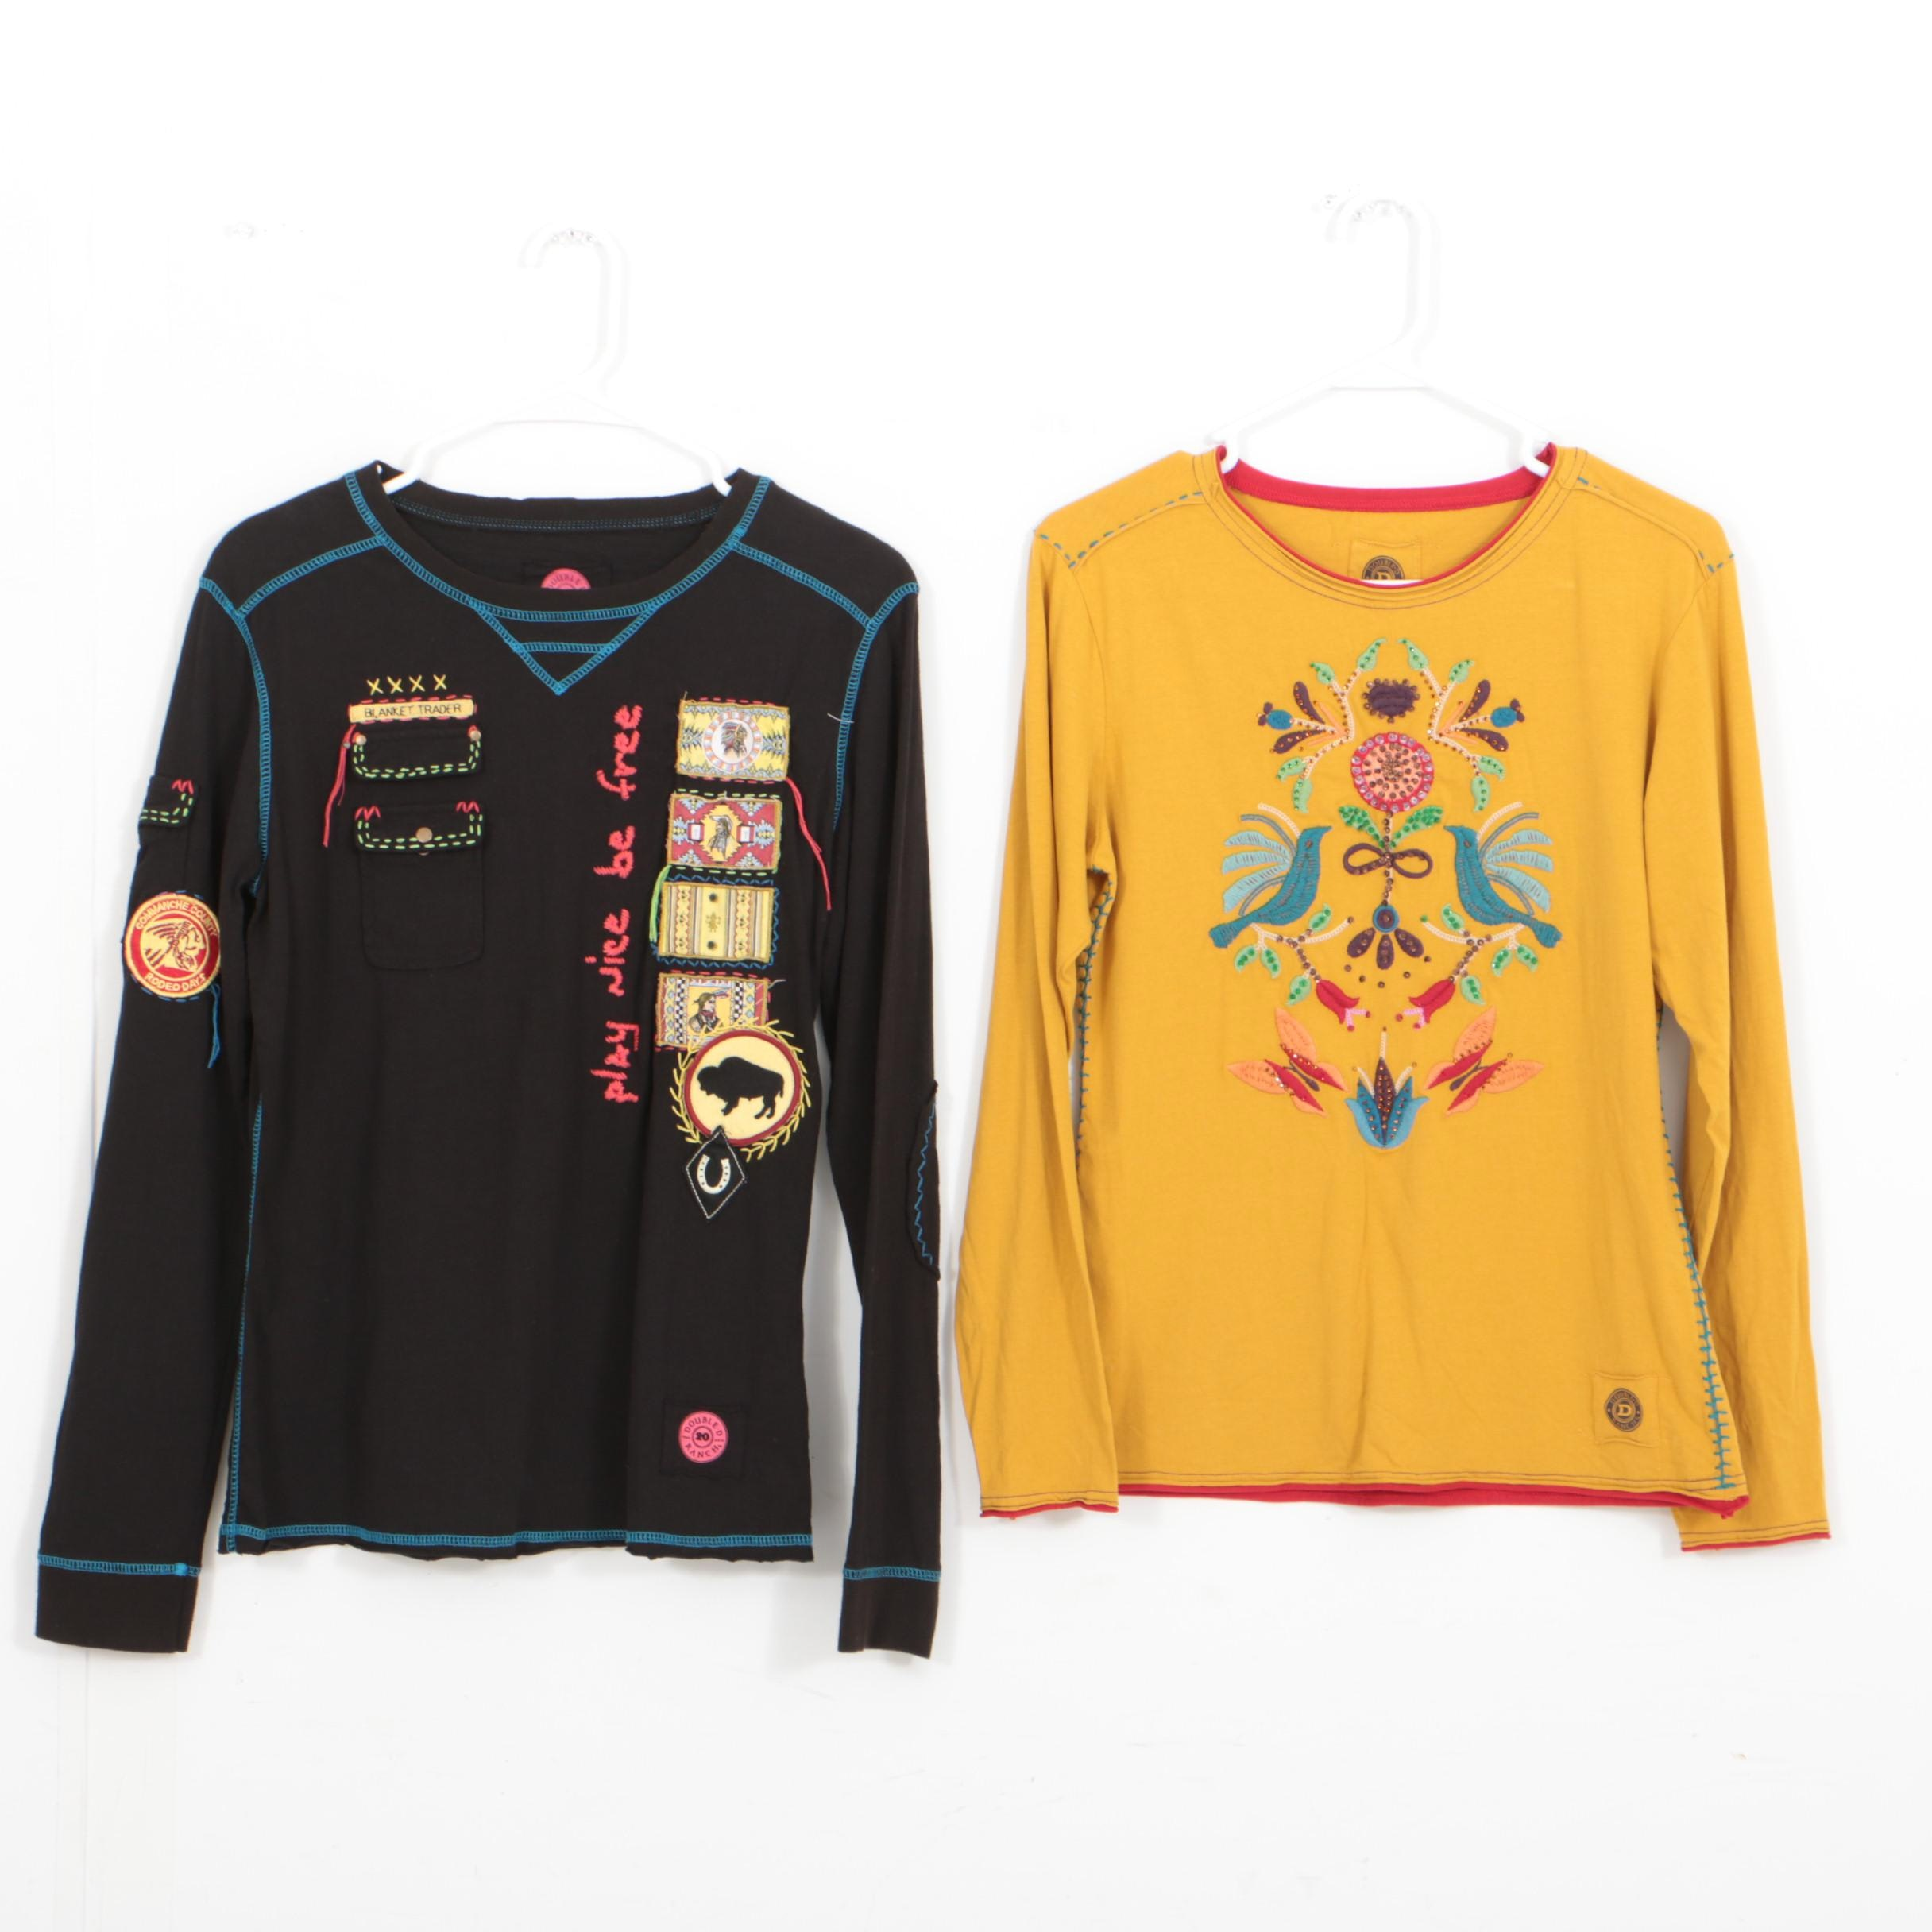 Pair of Double D Ranch Long Sleeve Embroidered Shirts